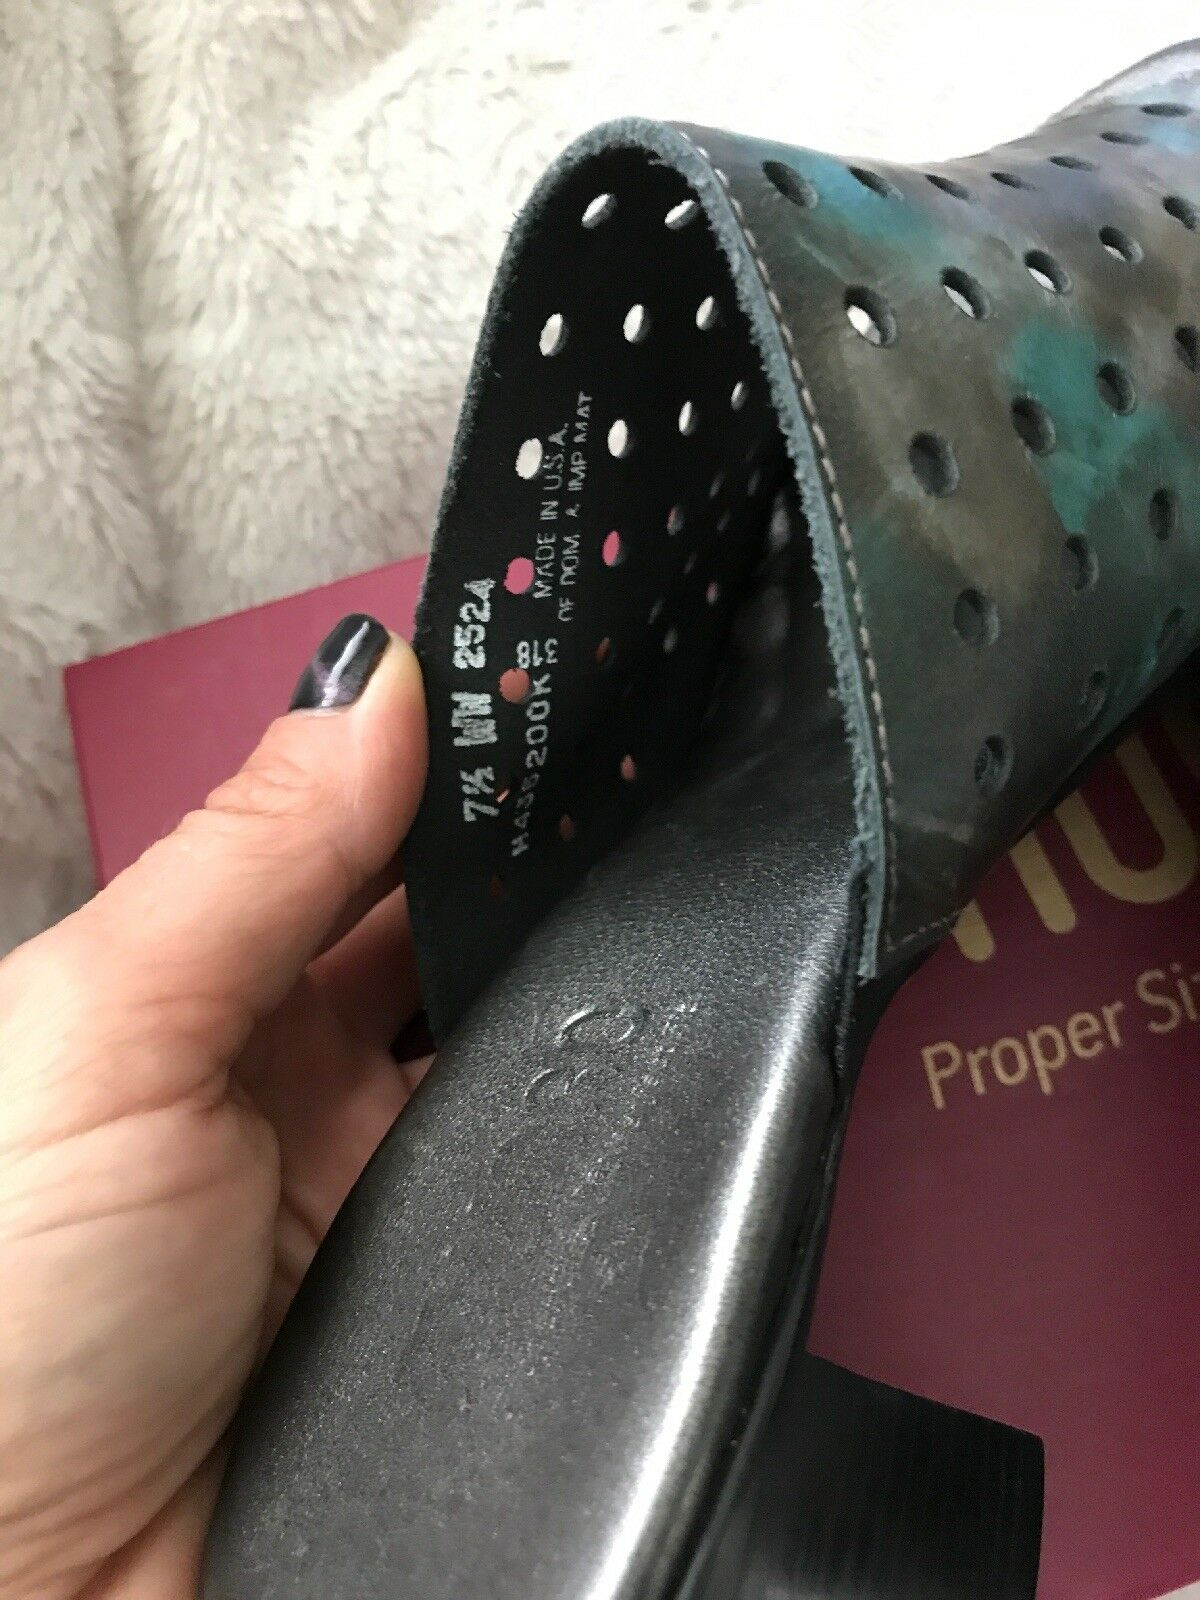 New Munro Jules Mixed Metal Perforated Heels Leather Stacked Heels Perforated damen 7.5 Open Toe 56cc42